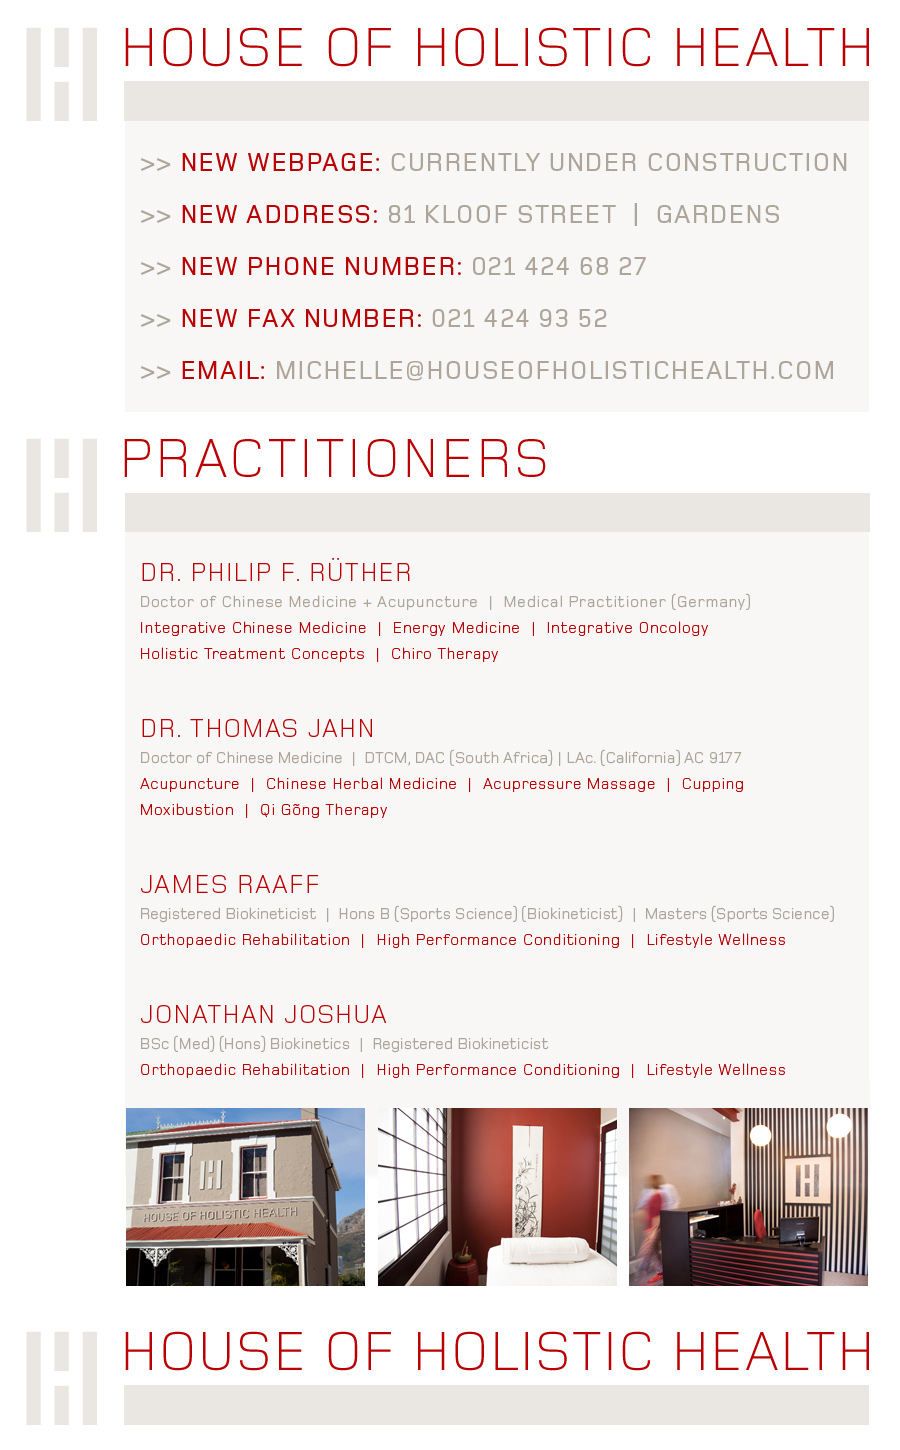 House of Holistic Health - Cape Town, 81 Kloof Street, Gardens. Tel.+27(0) 21 4246827 - Dr P Ruther, Dr T Jahn, James Raaff, Jonathan Joshua - Chinese Medicine, Acupuncture, Herbal Medicine, Biokinetics, Qi Gong, Integrative Oncology. New Website Under Construction